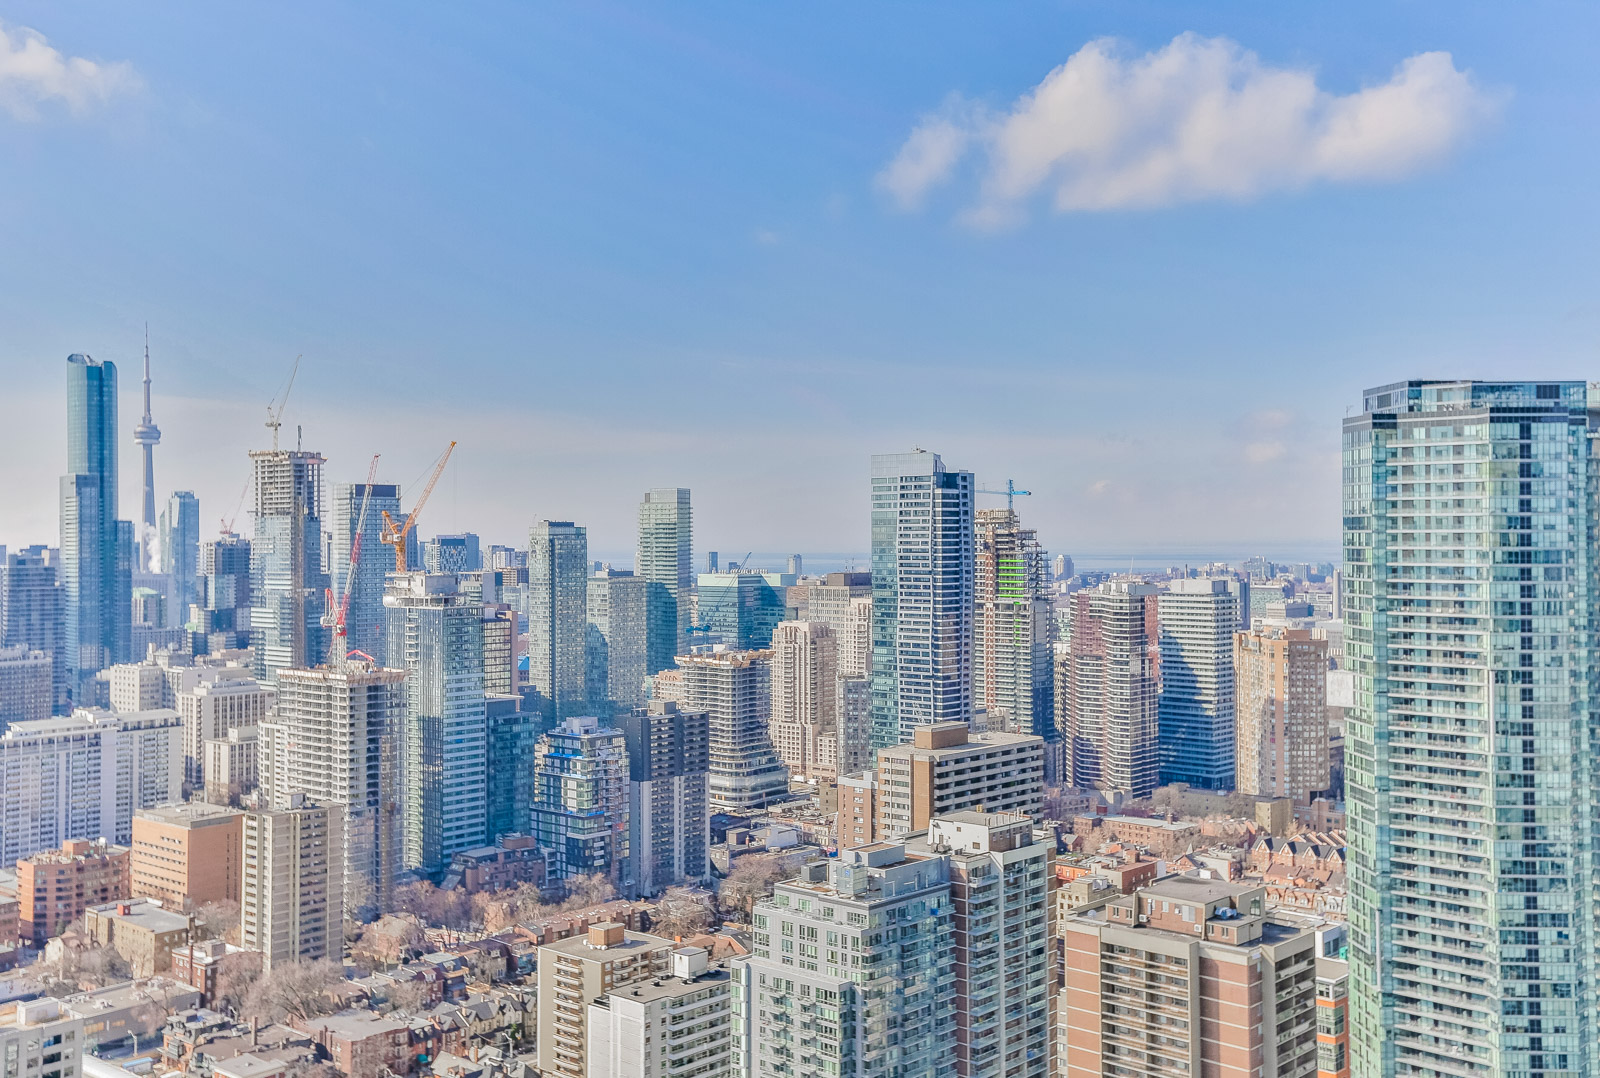 Picture of Toronto skyline, as seen from 28 Ted Rogers Way.